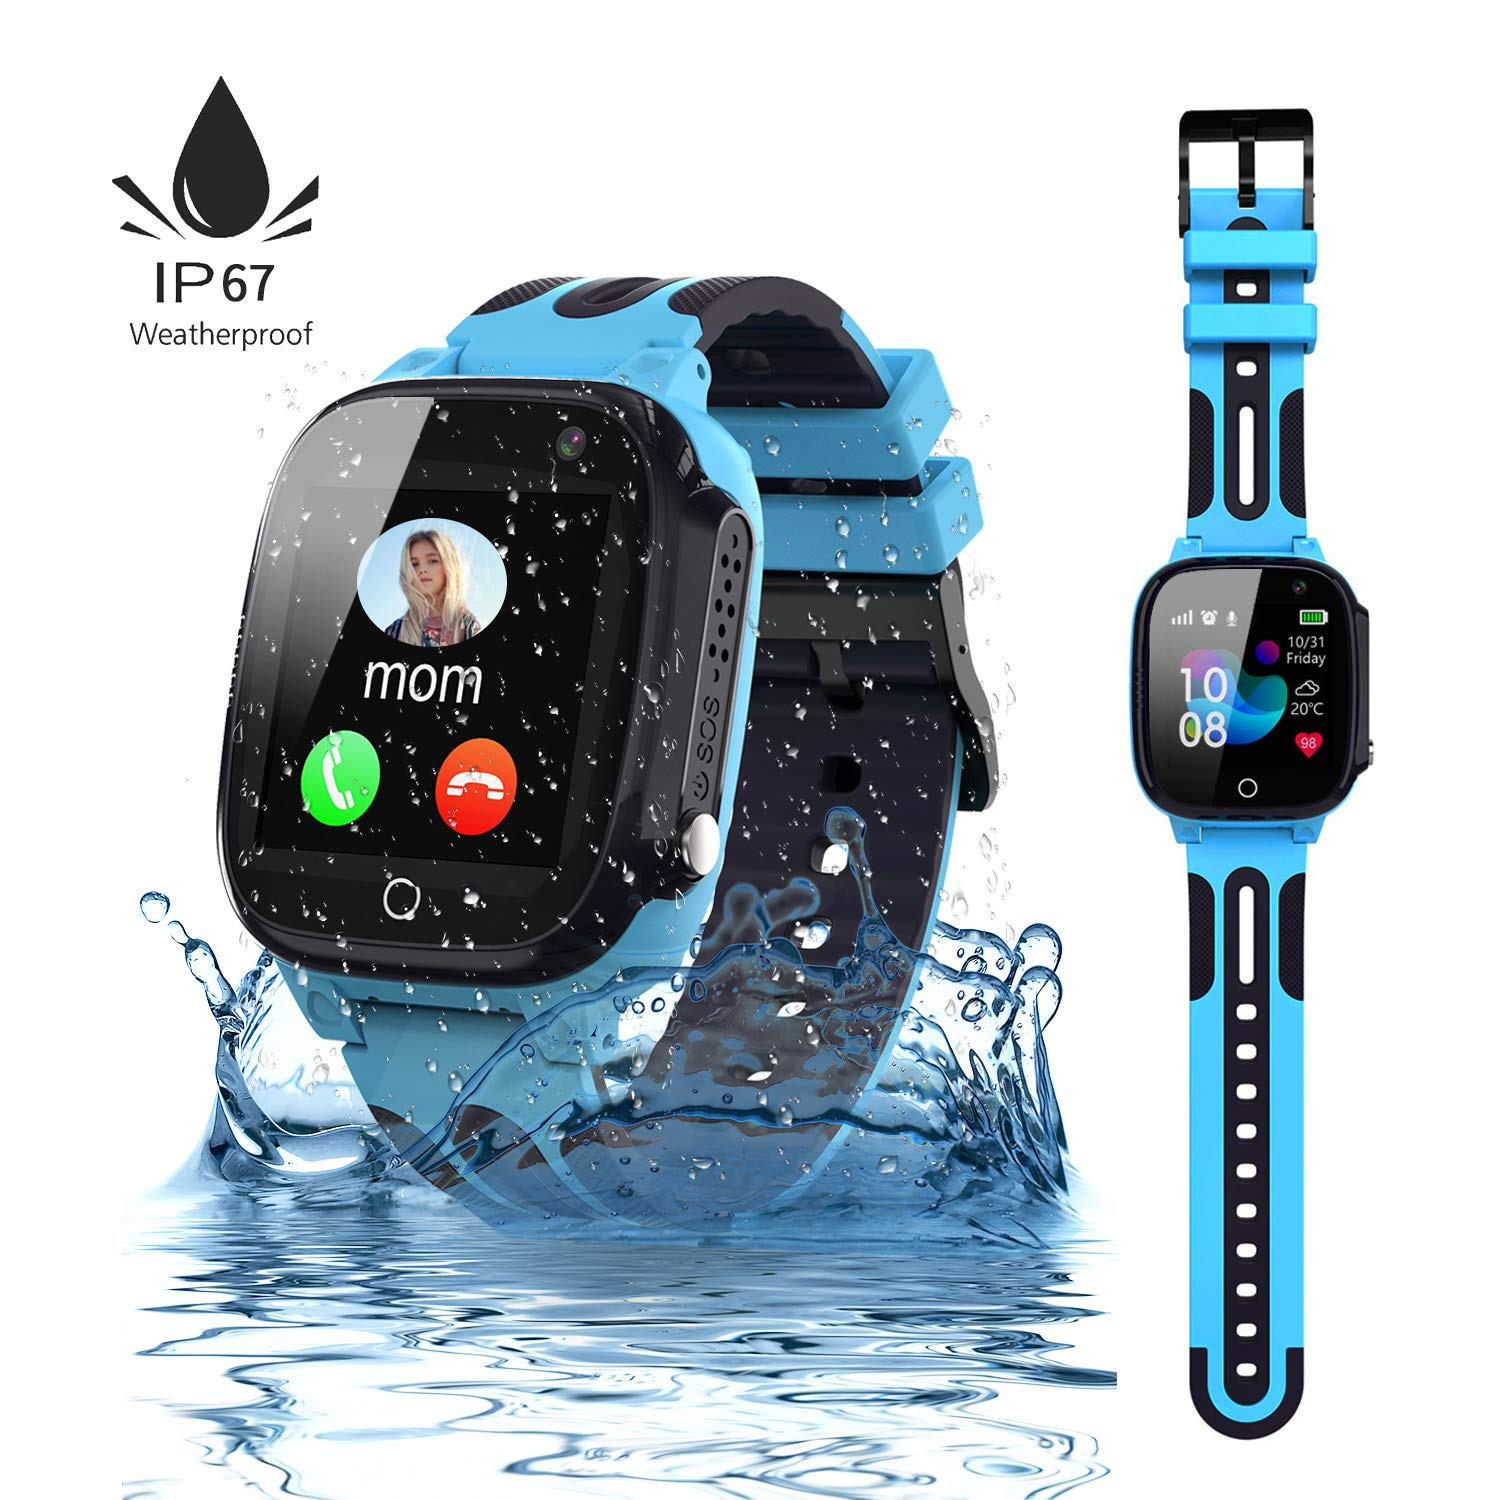 Jsbaby Kids Smartwatch LBS/GPS Tracker Phone with IP67 Waterproof Smartwatch Two Way Calls Game Watches for Boys and Girls Compatible iOS Android 2G ...